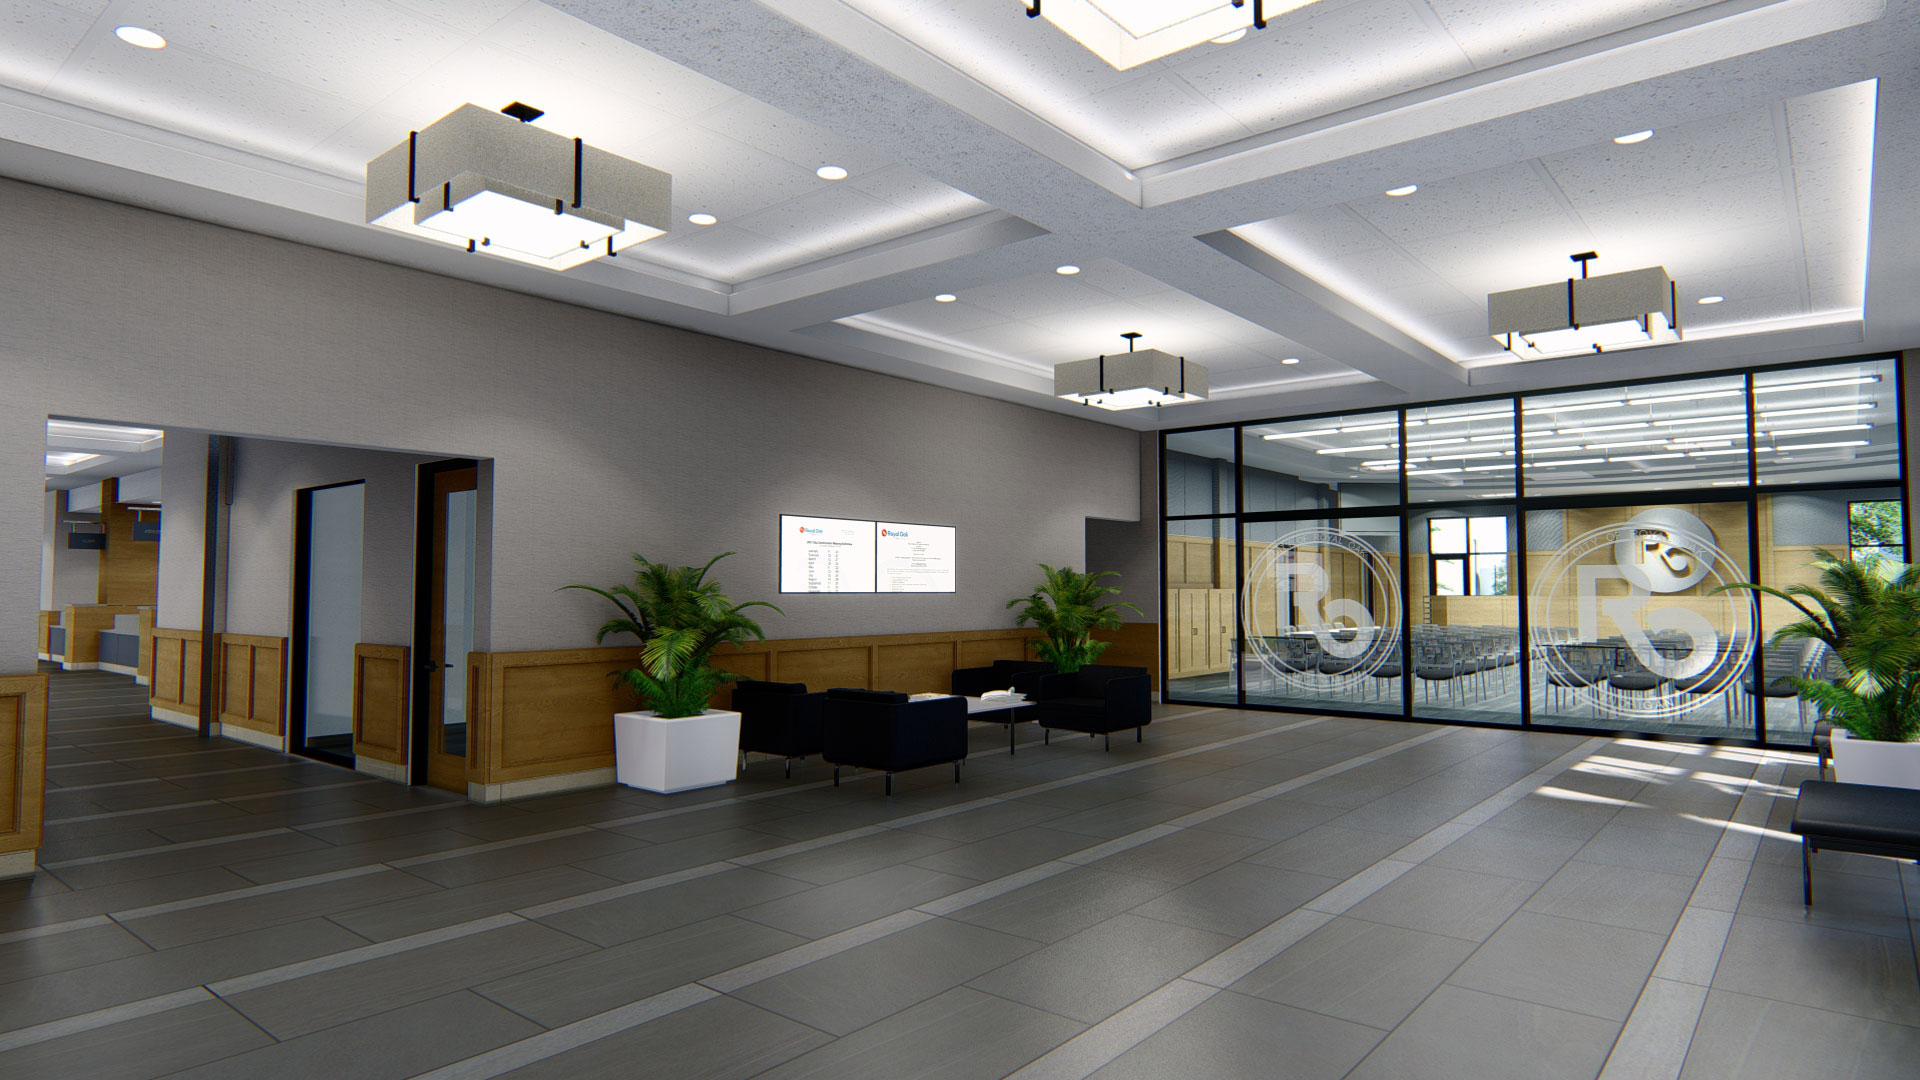 Royal Oak City Hall lobby and seating area rendering